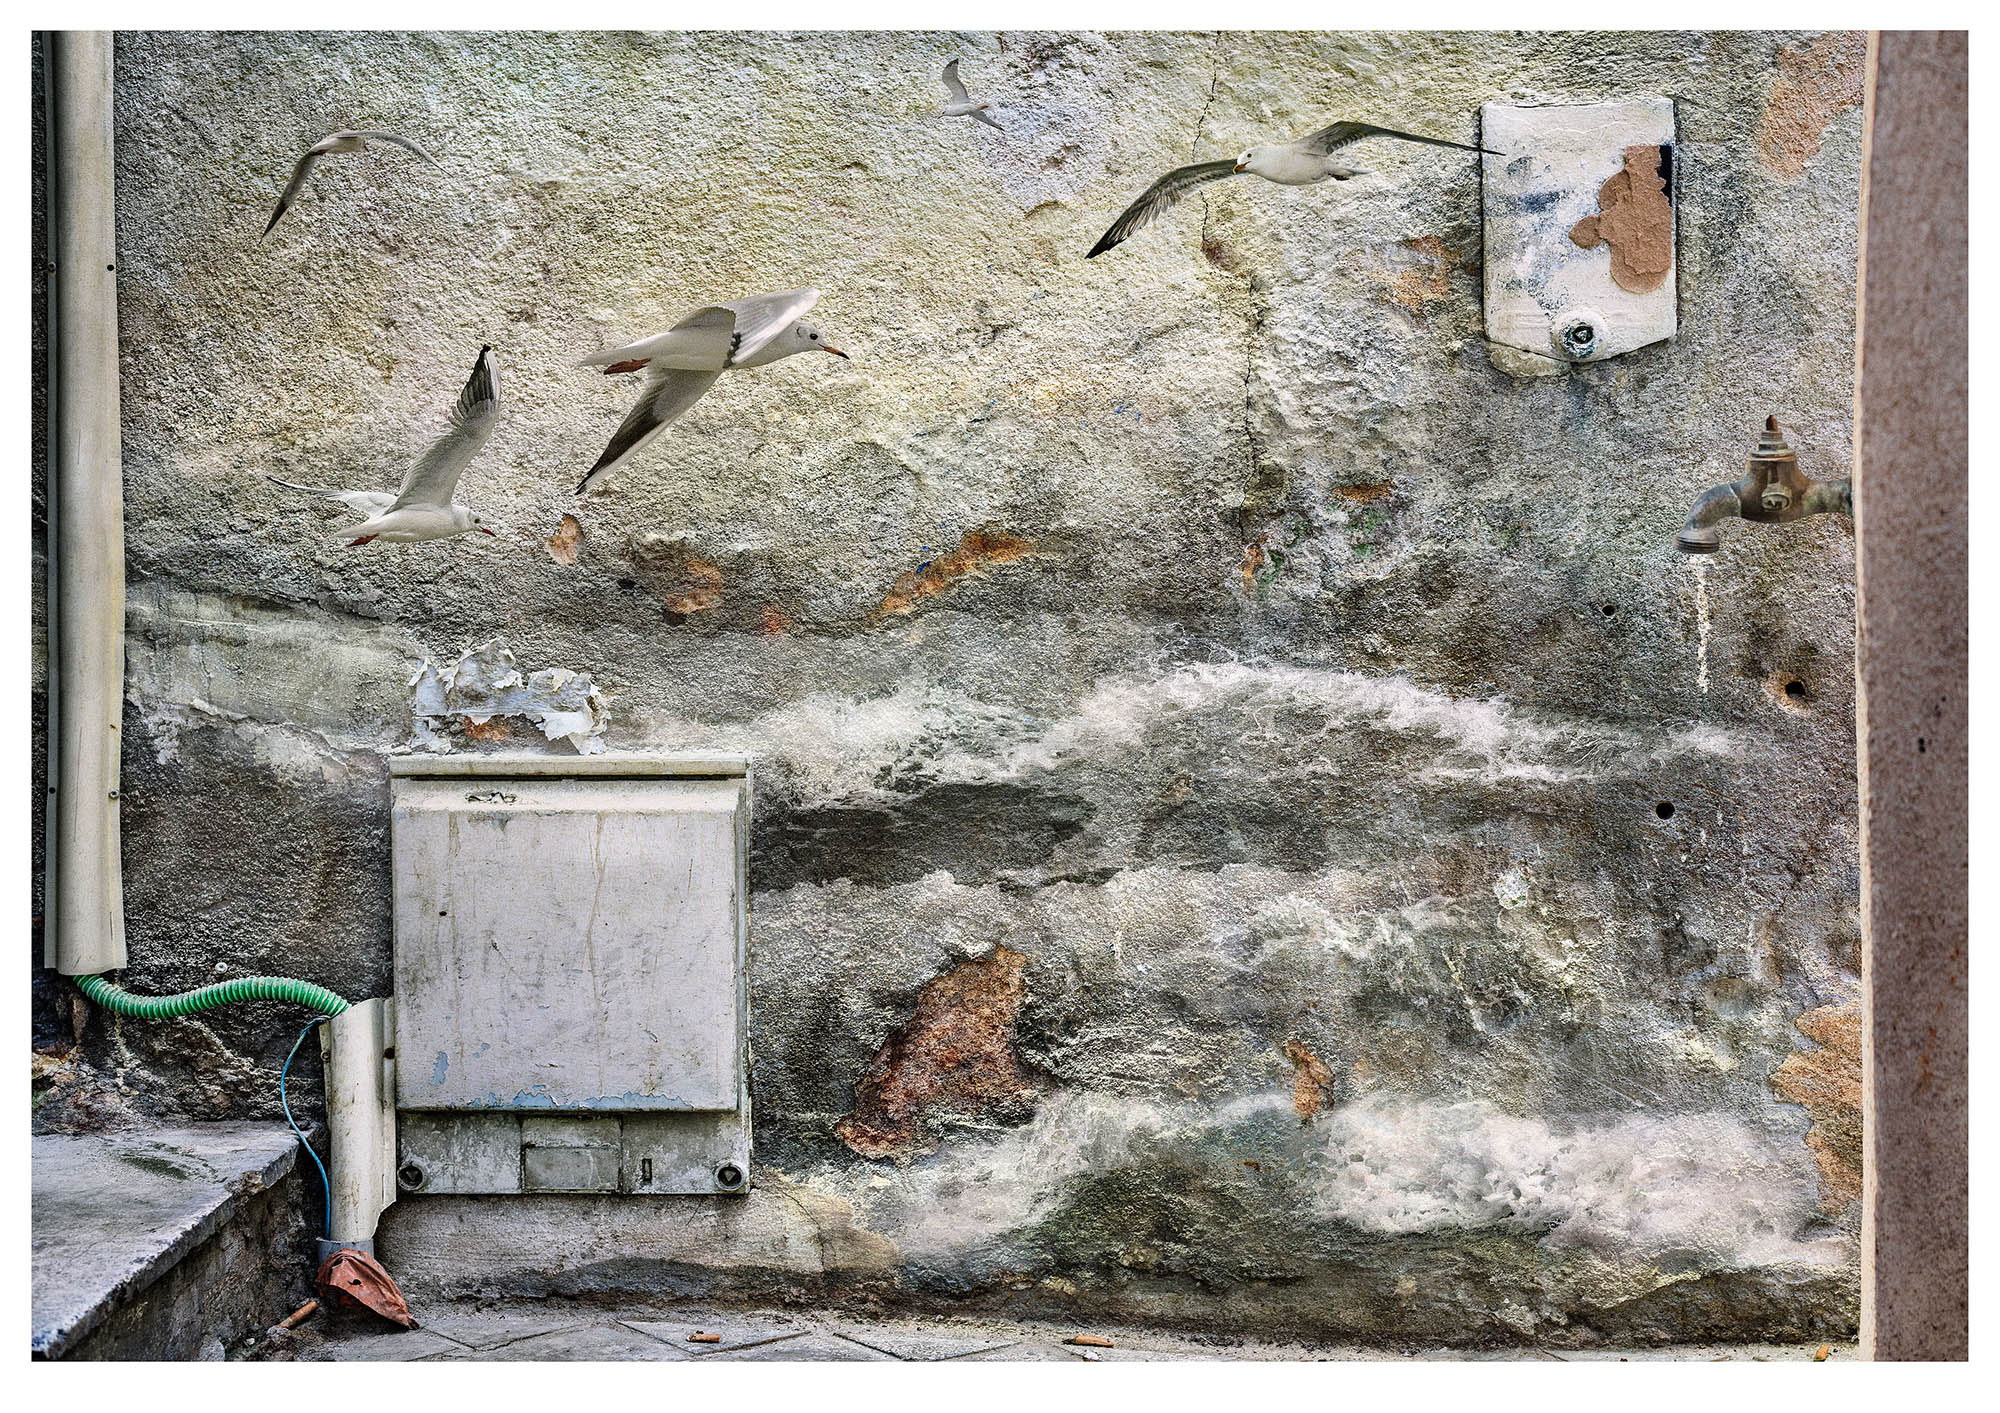 No. 8 last in series: a crumbling wall with elecric junction box is the background to overlaid stormy seas and flying seagulls- illustrates the fear of rising water levels